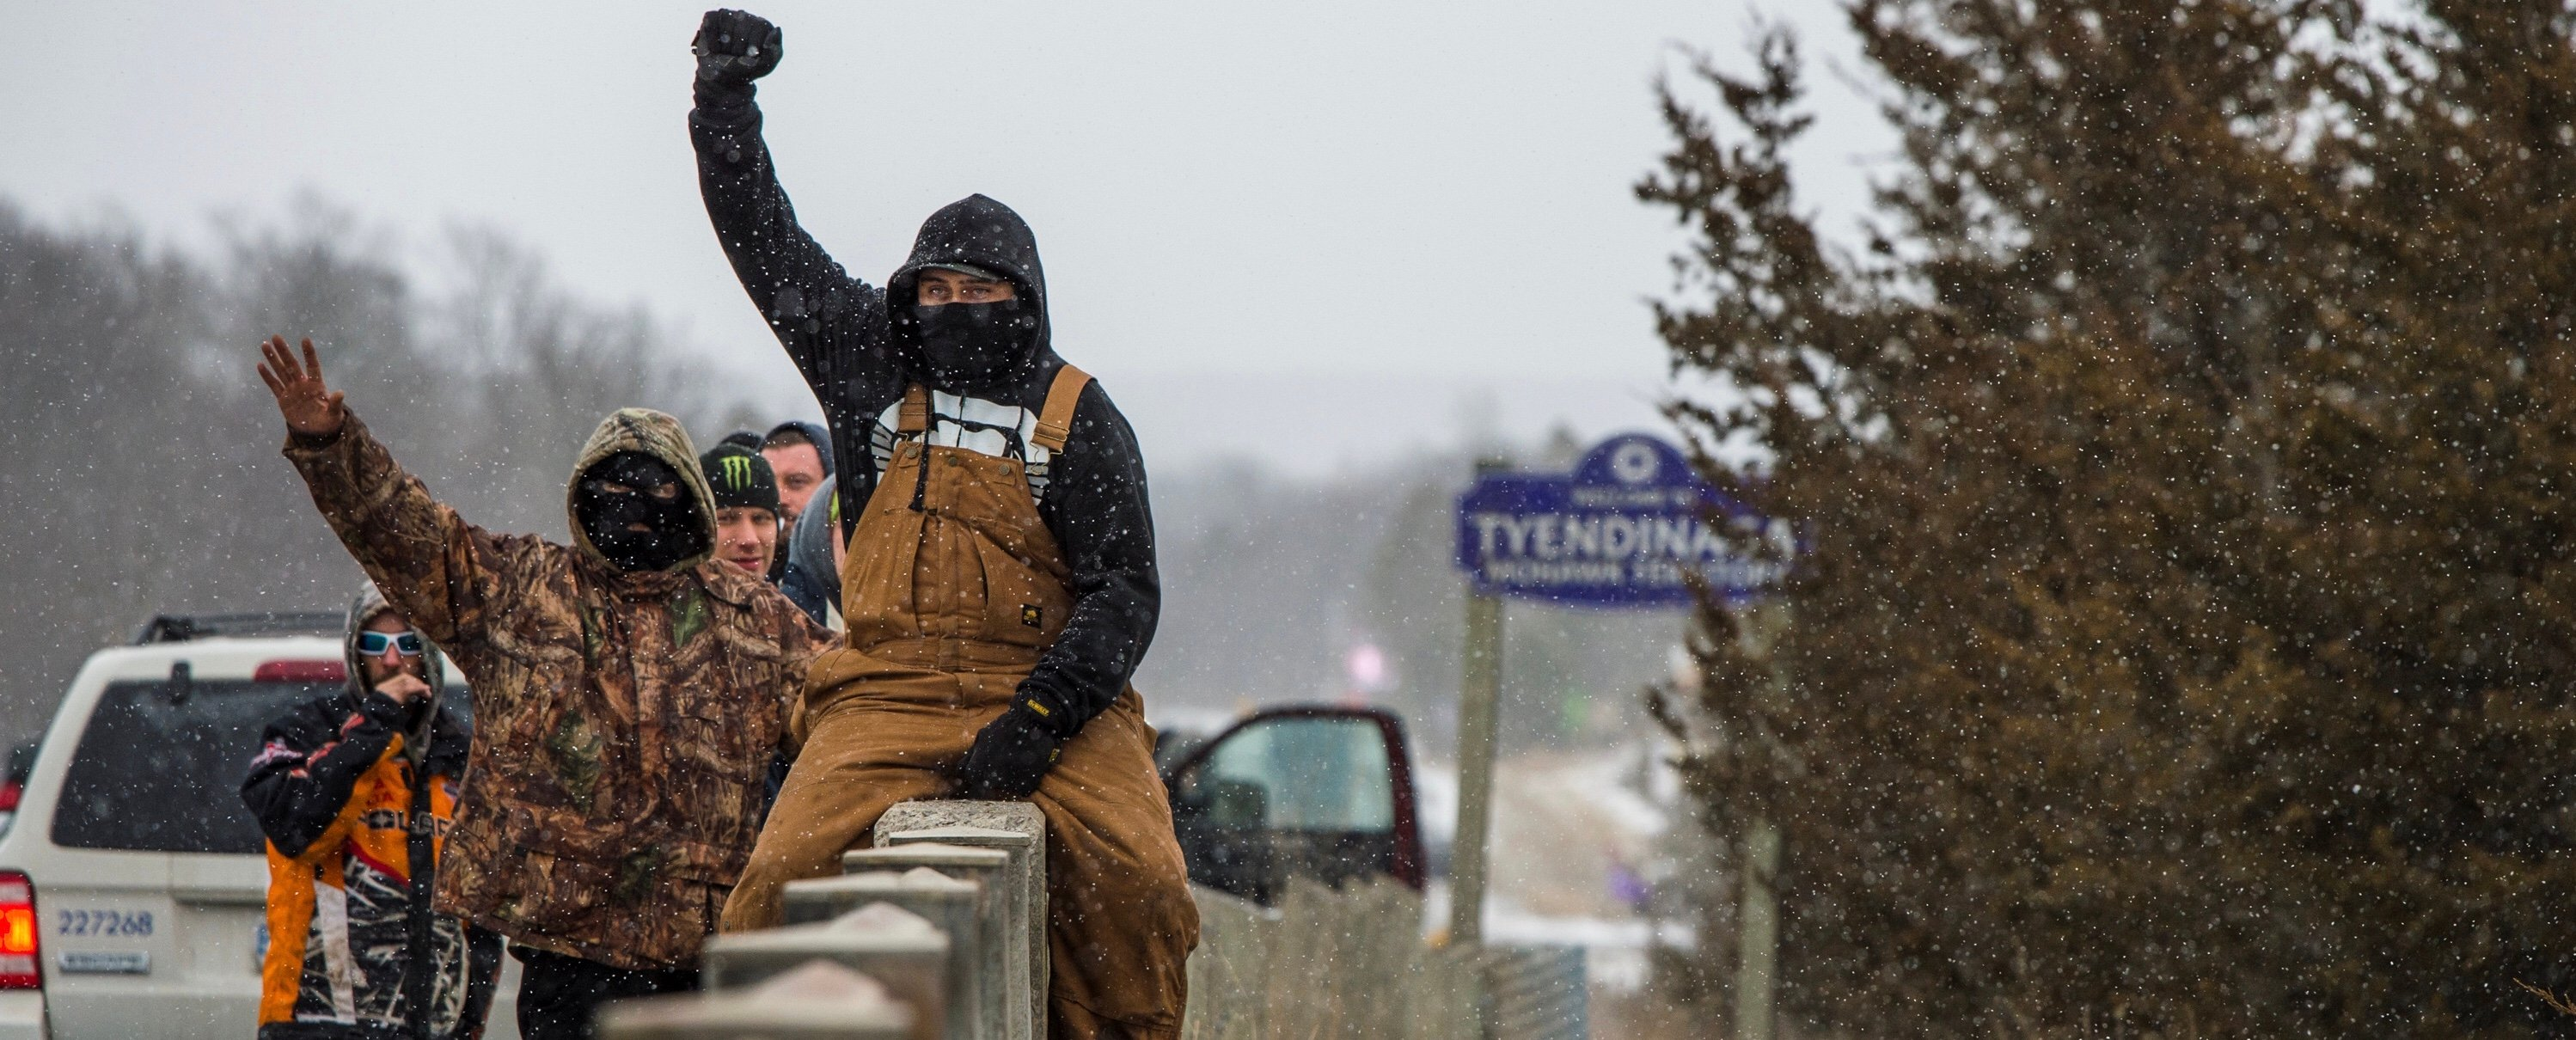 A demonstrator raises his fist as he sits on a bridge overlooking an encampment of the Tyendinaga Mohawk Territory, set up in support of the Wet'suwet'en Nation who are trying to stop construction of British Columbia's Coastal GasLink pipeline, in Tyendinaga, Ontario, Canada Feb. 26, 2020. REUTERS/Alex Filipe